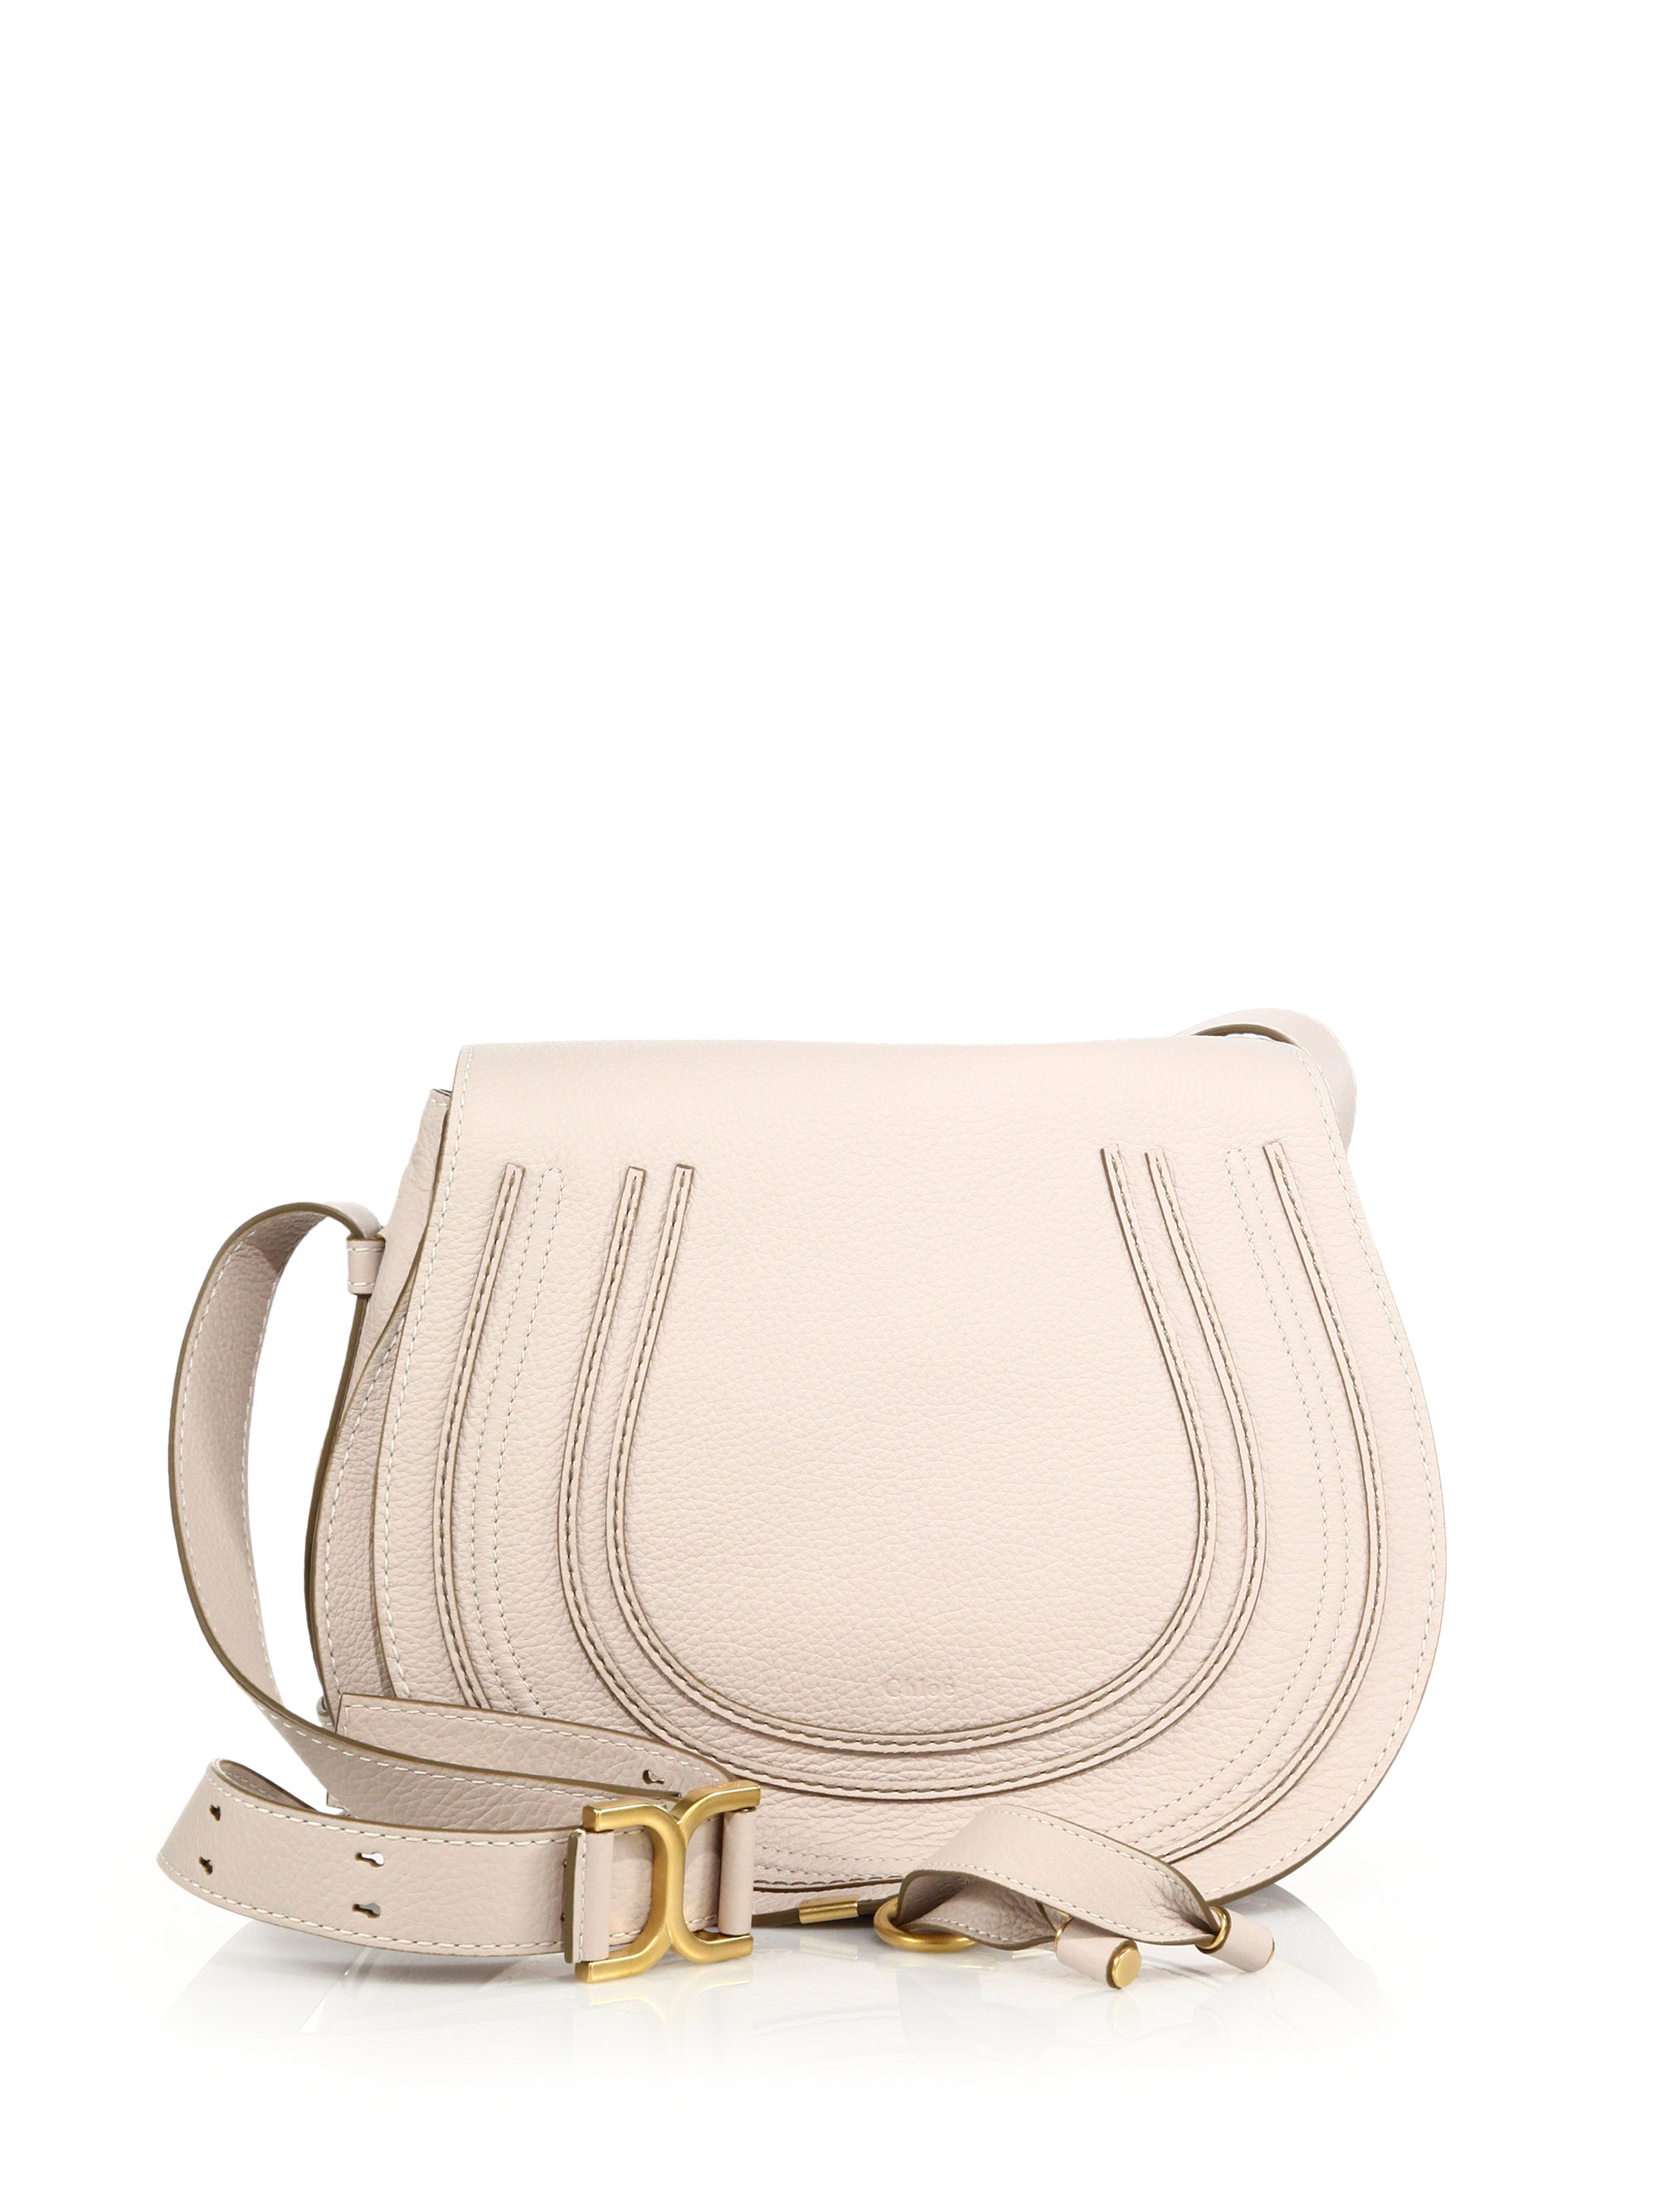 Chlo¨¦ Marcie Medium Crossbody Bag in White (ABSTRACT WHITE) | Lyst